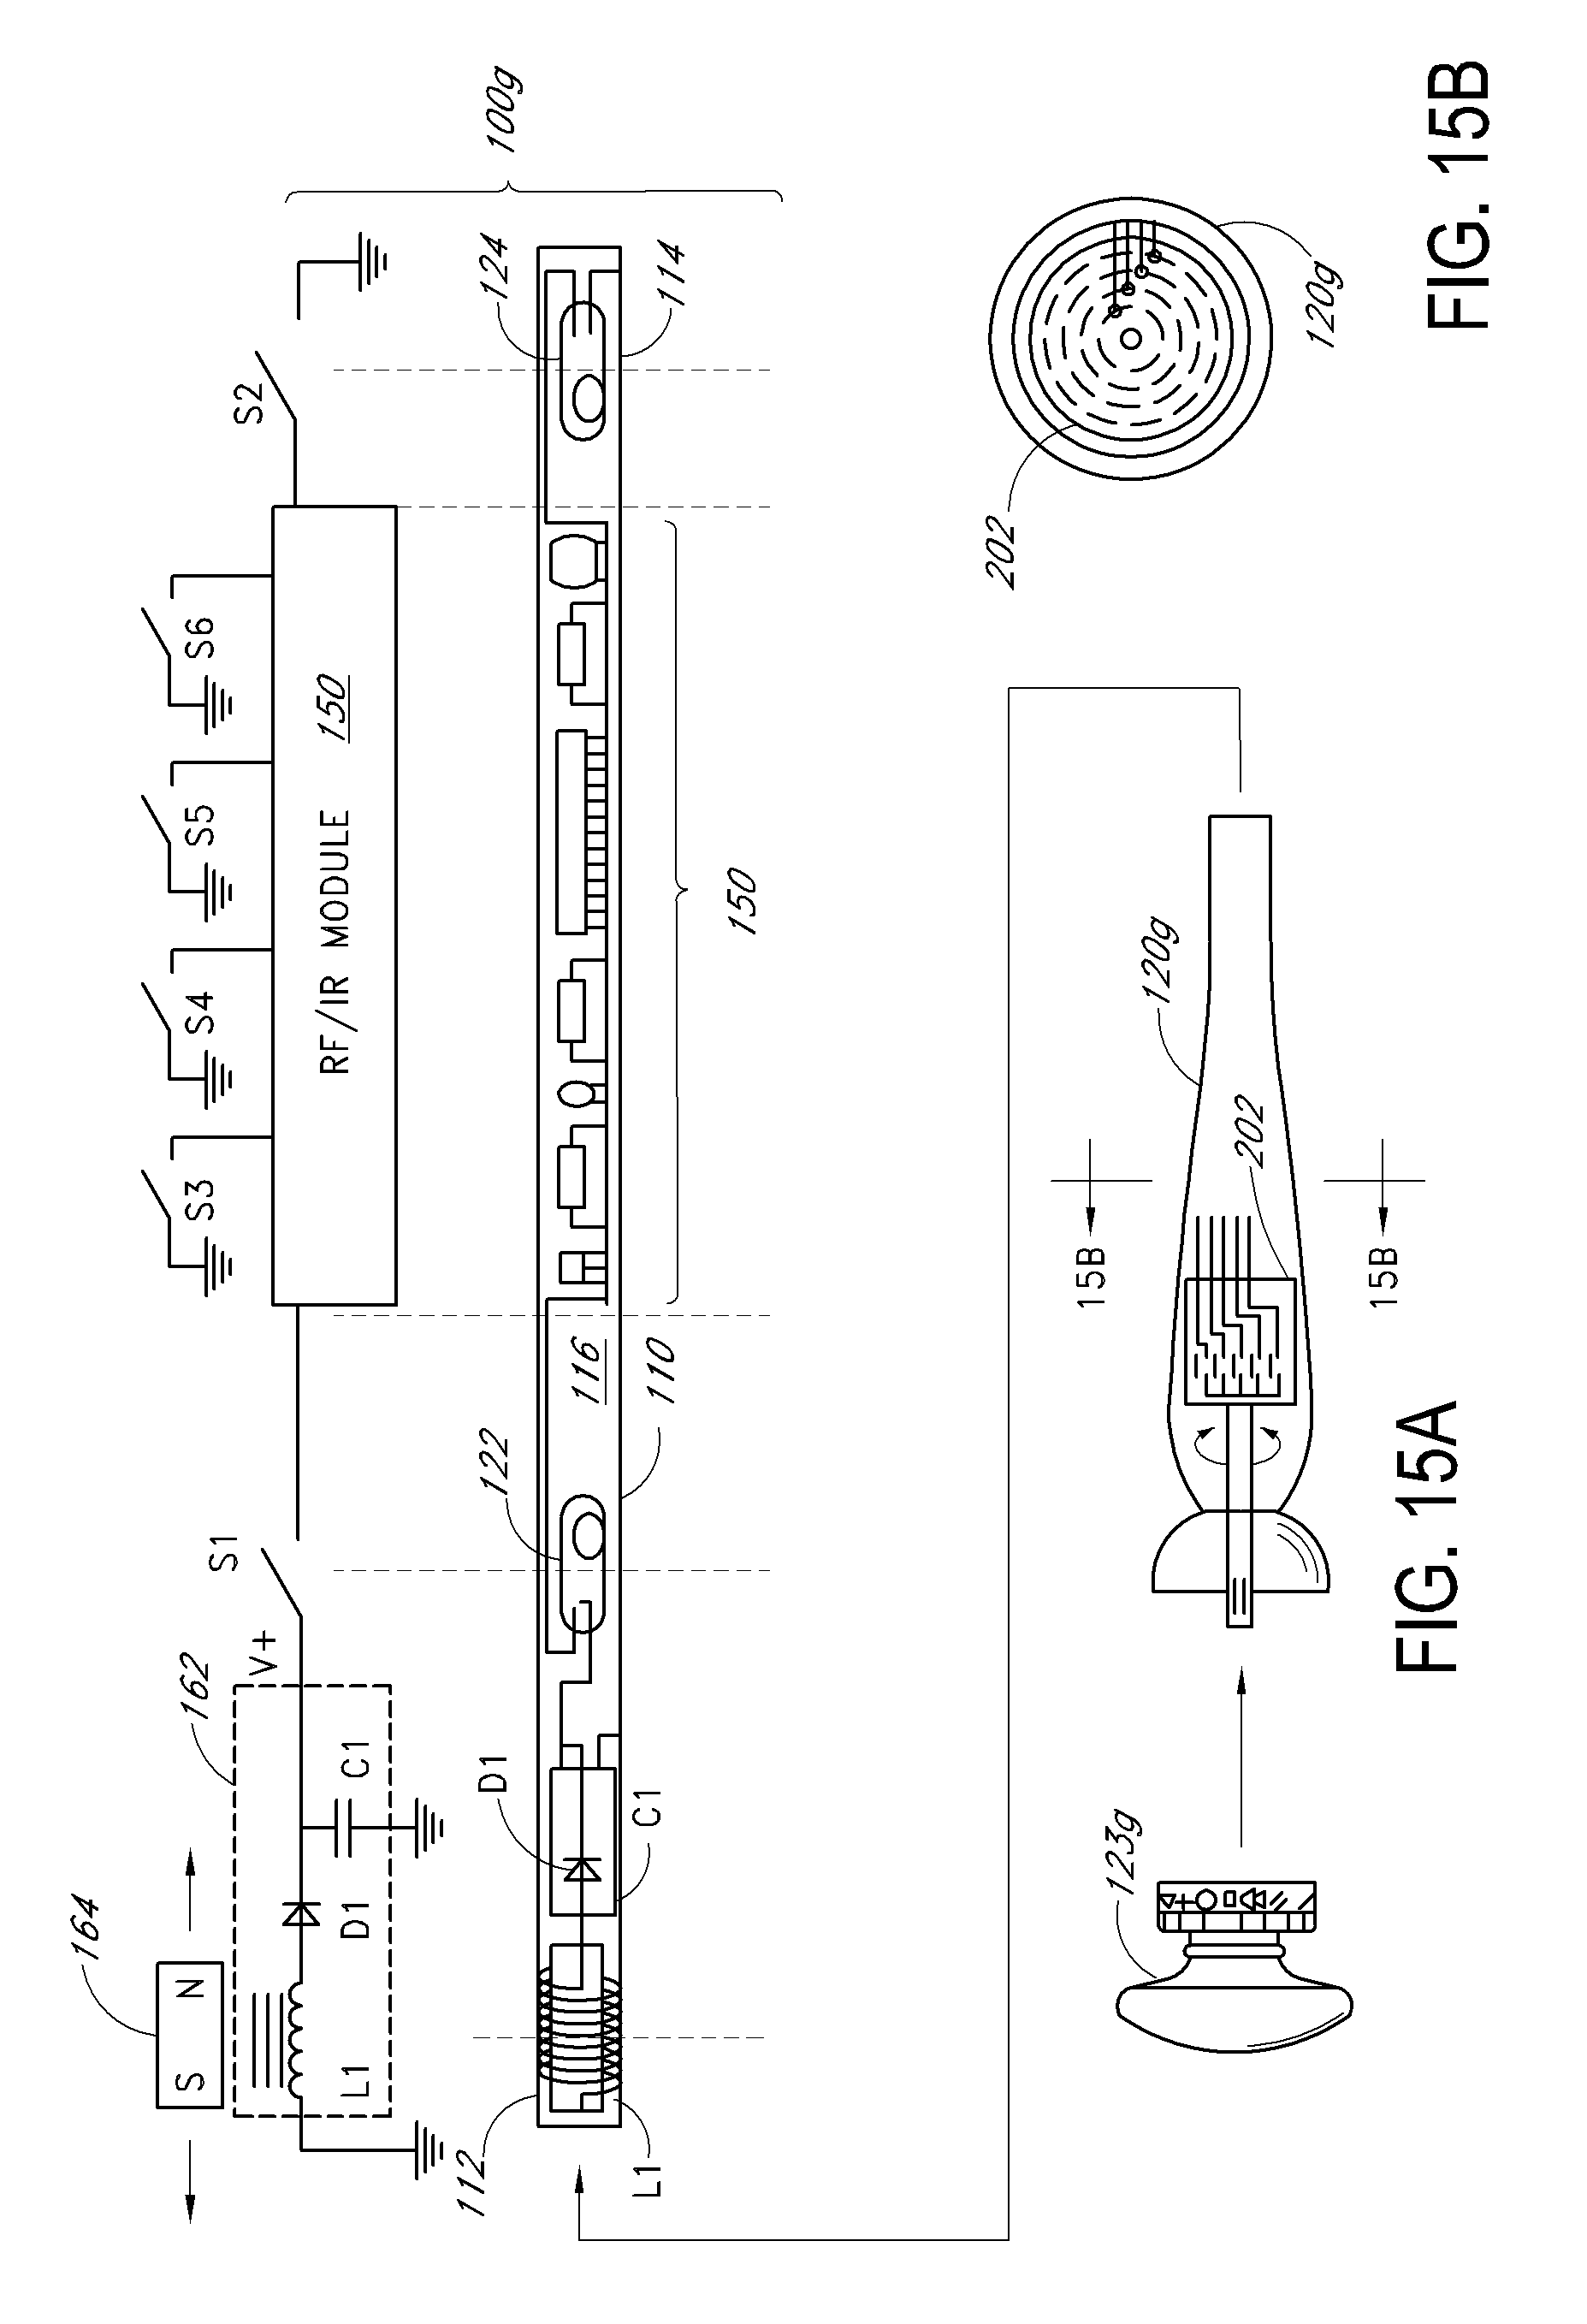 Patent Us 9039533 B2 Mechanical Electrical Plan Vignette